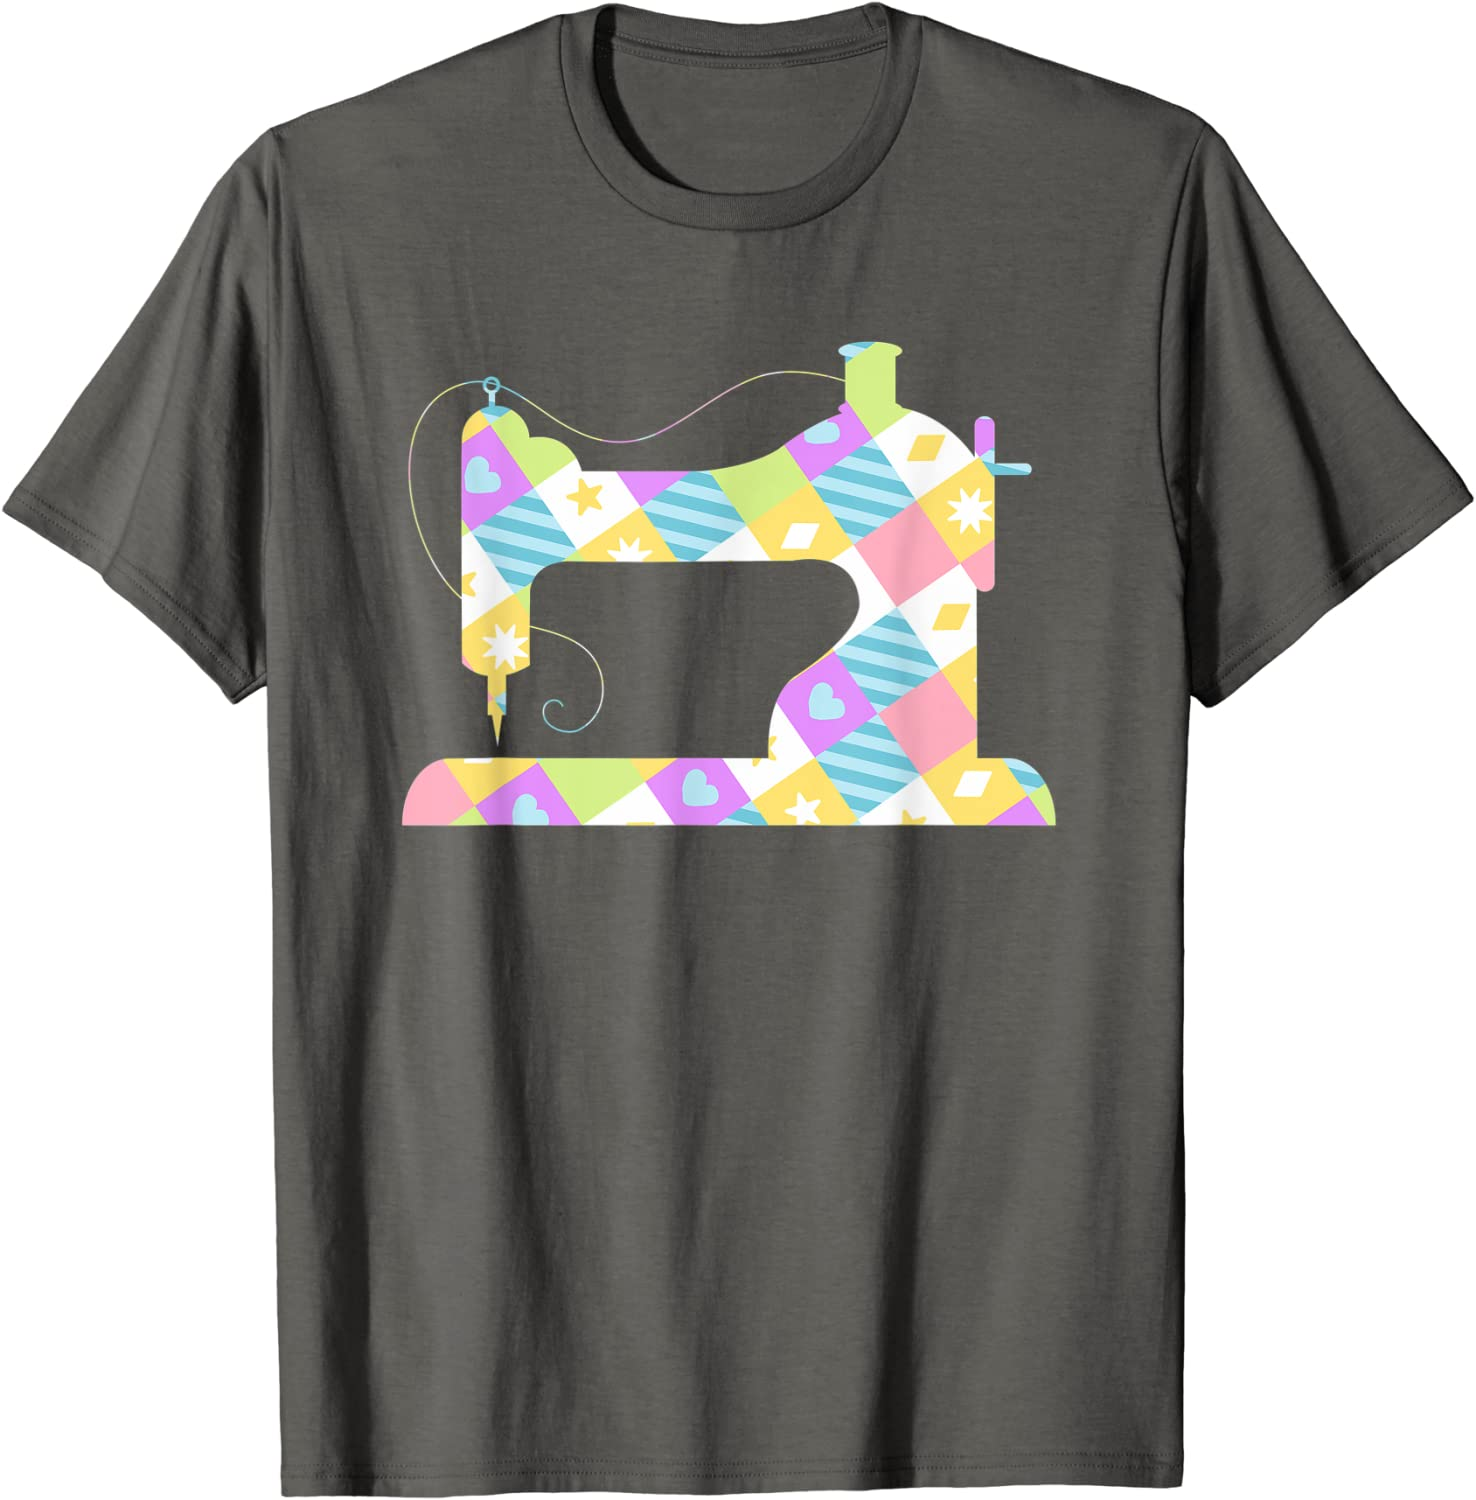 Sewing Machine Shirt Max 57% OFF For Women Seamstress T-Shirt Bargain sale Sew Quilting